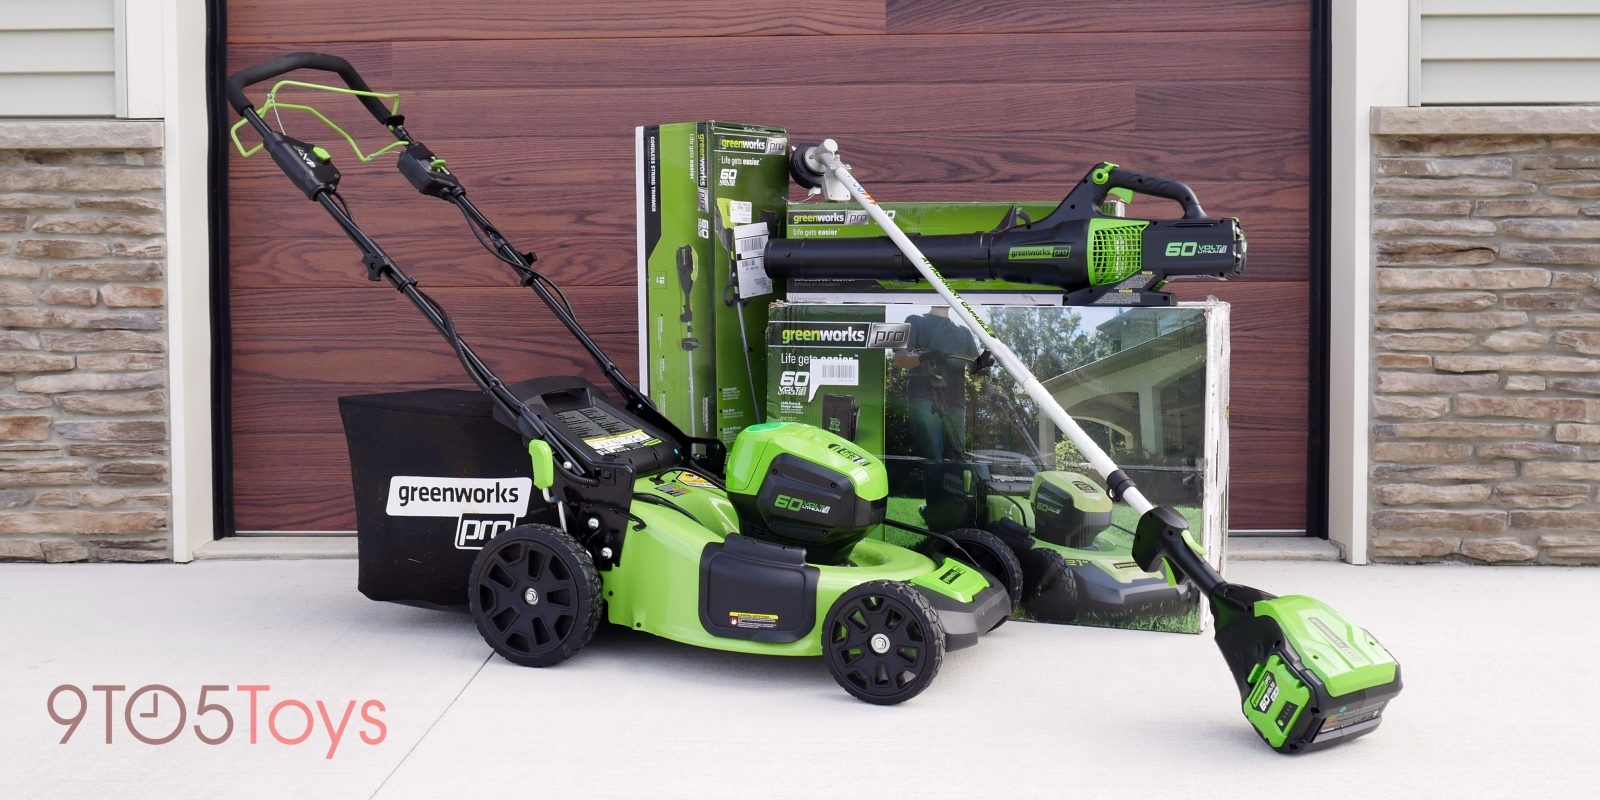 greenworks pro 60v review farewell gas outdoor tools i m all electric now [ 1600 x 800 Pixel ]